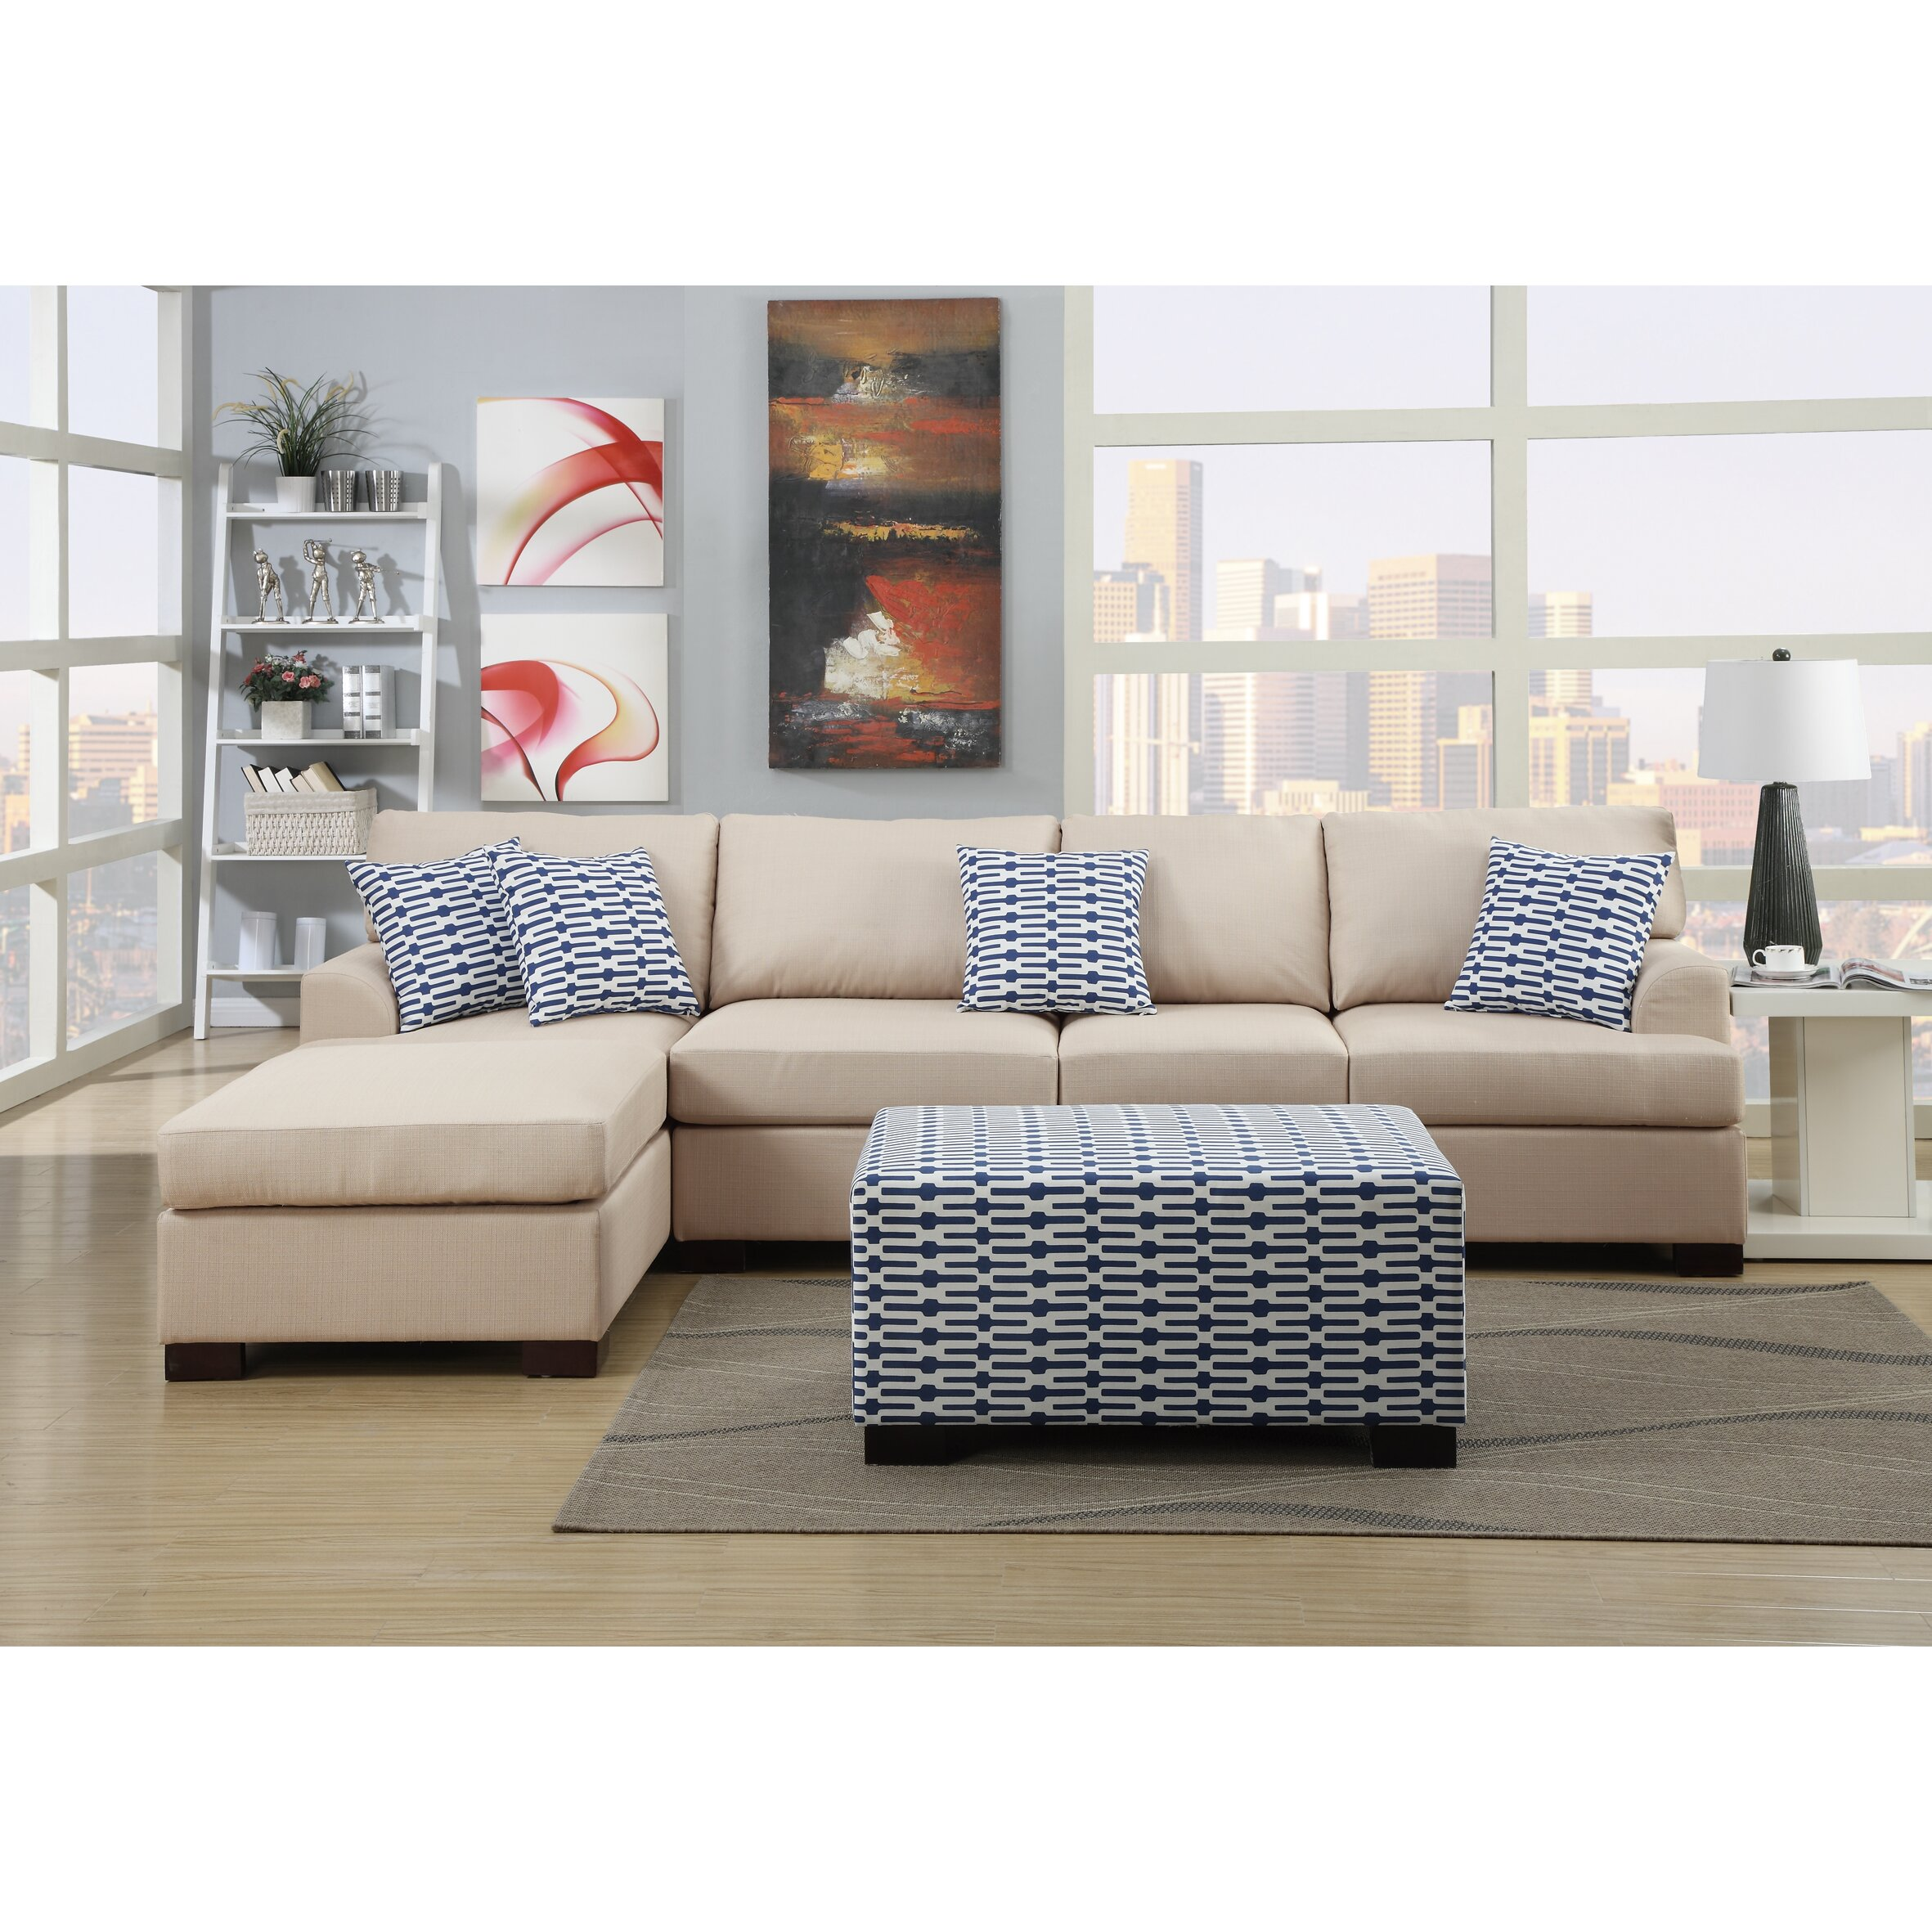 Poundex Sectional White Leather Sofa Chaise: Poundex Bobkona Cayden Reversible Sectional & Reviews